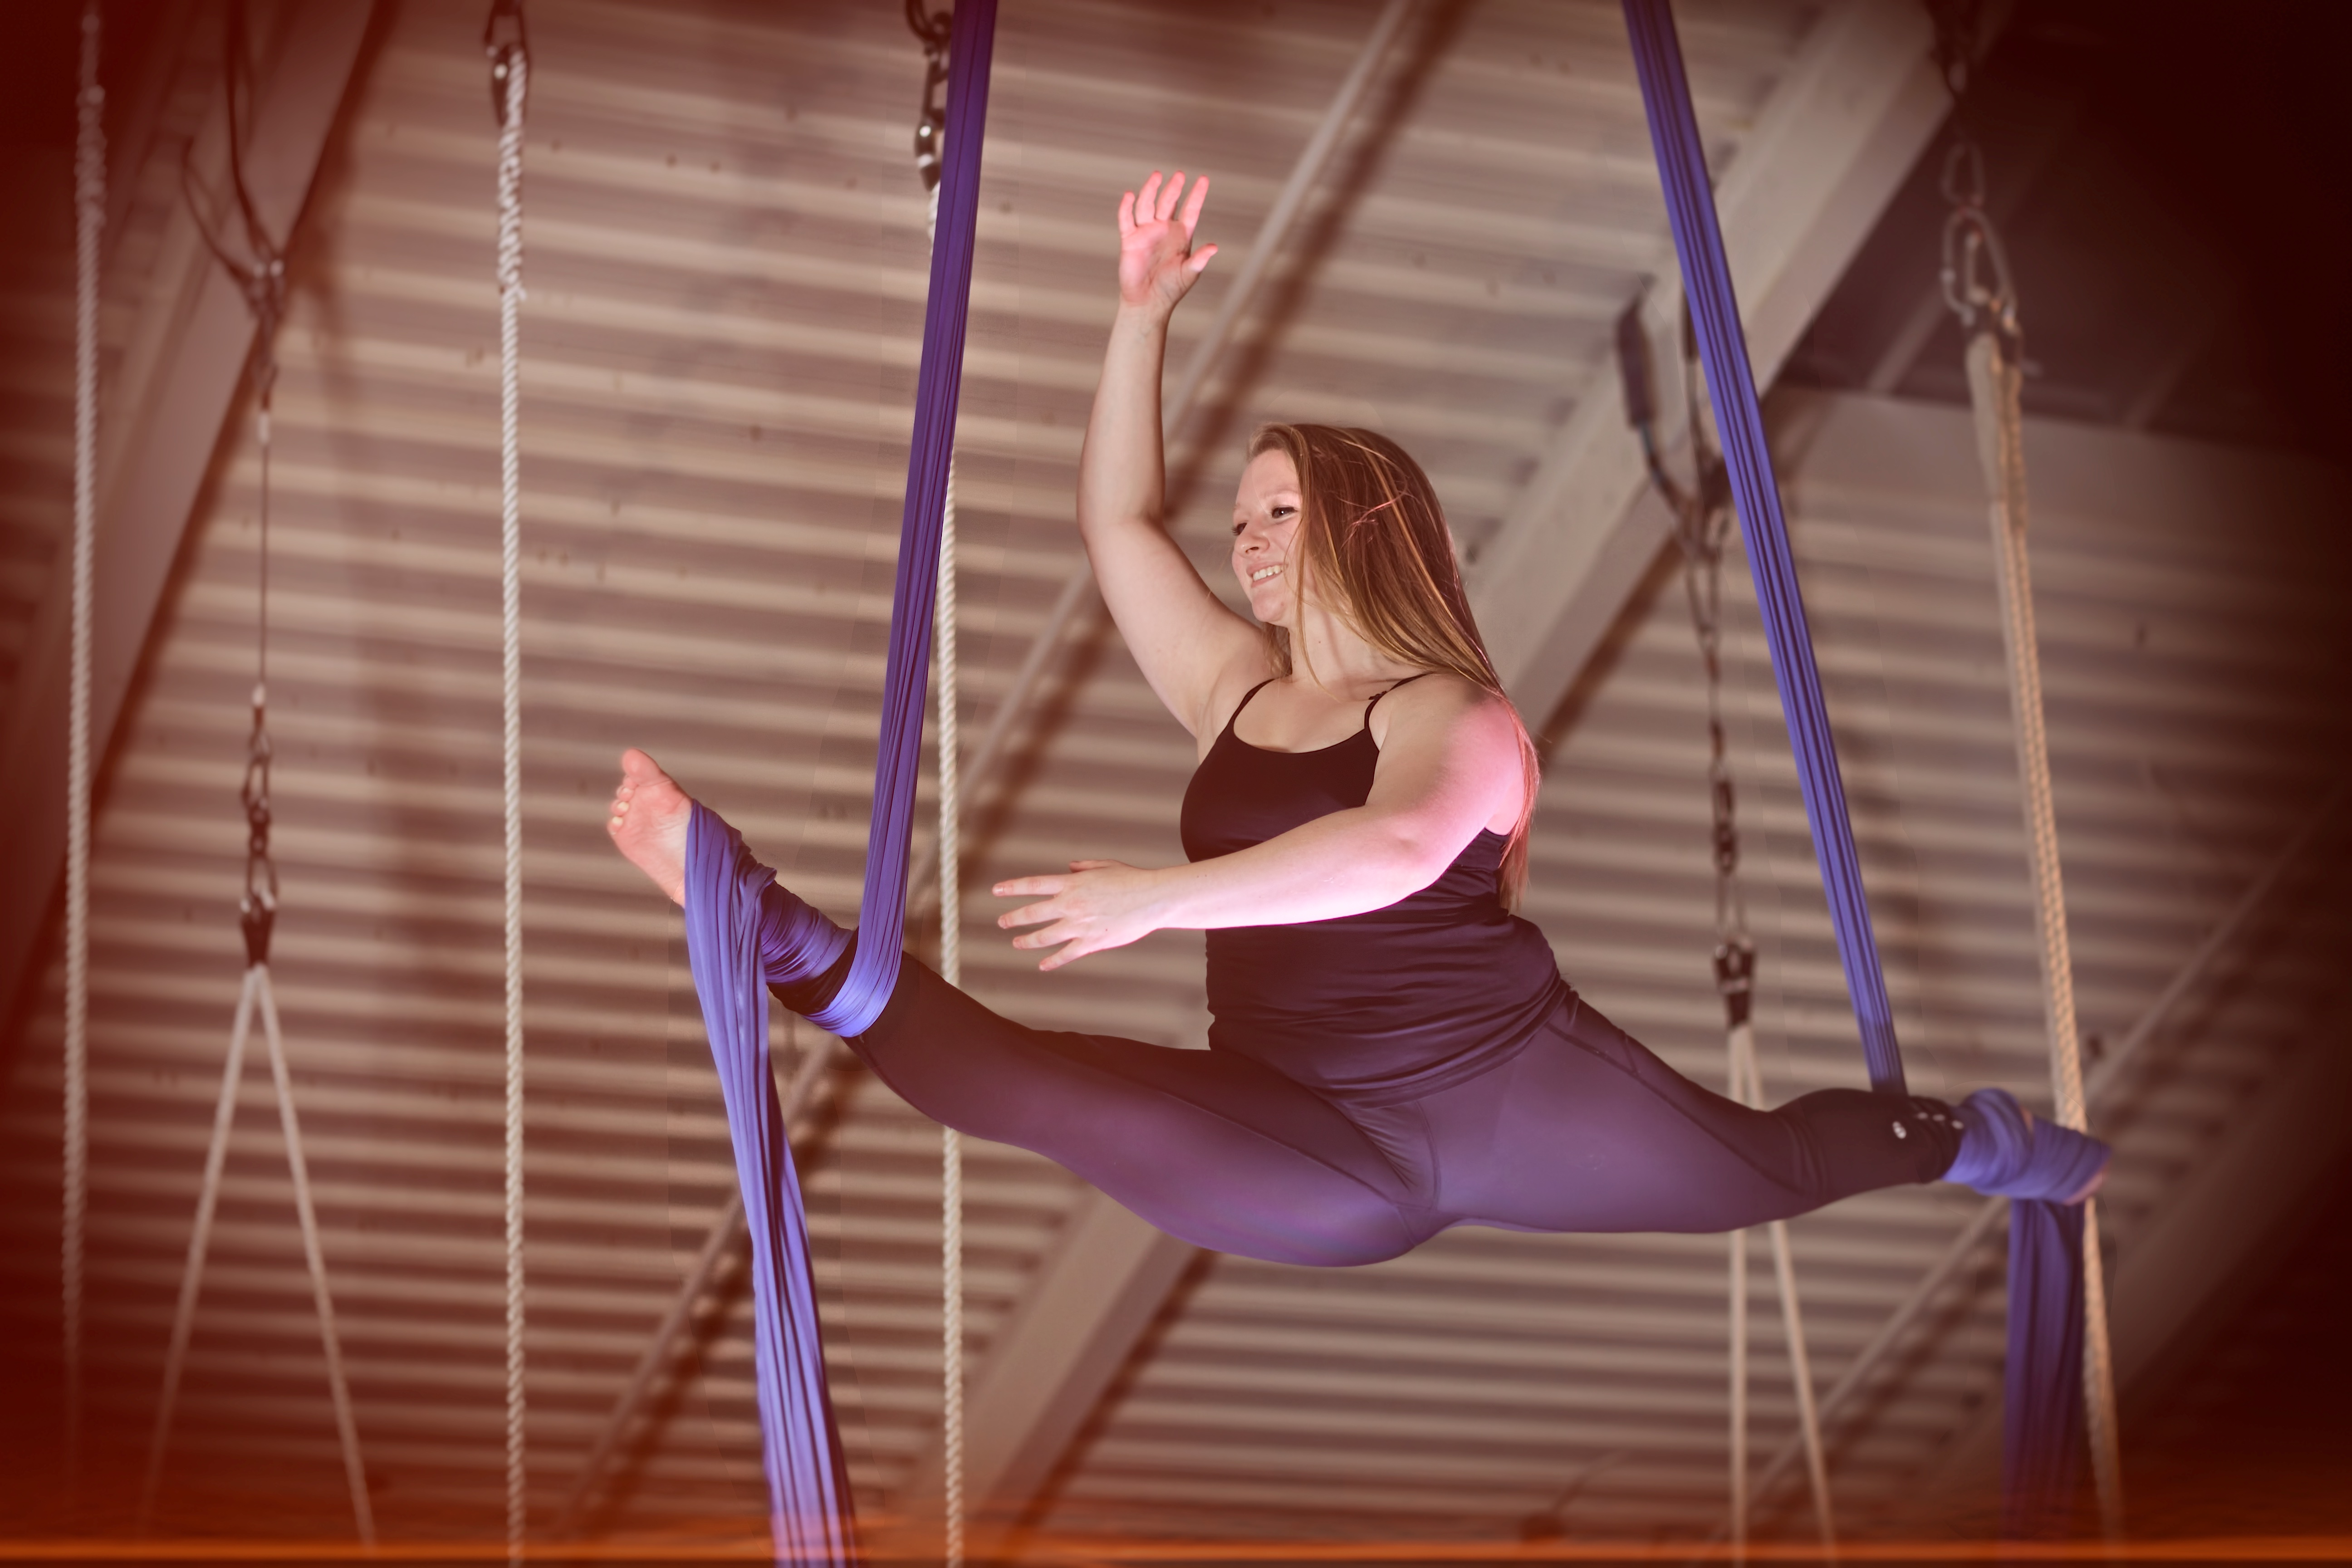 Sydney performing a split balance, with her legs wrapped around the silks and her arms in the air, balancing in the splits.